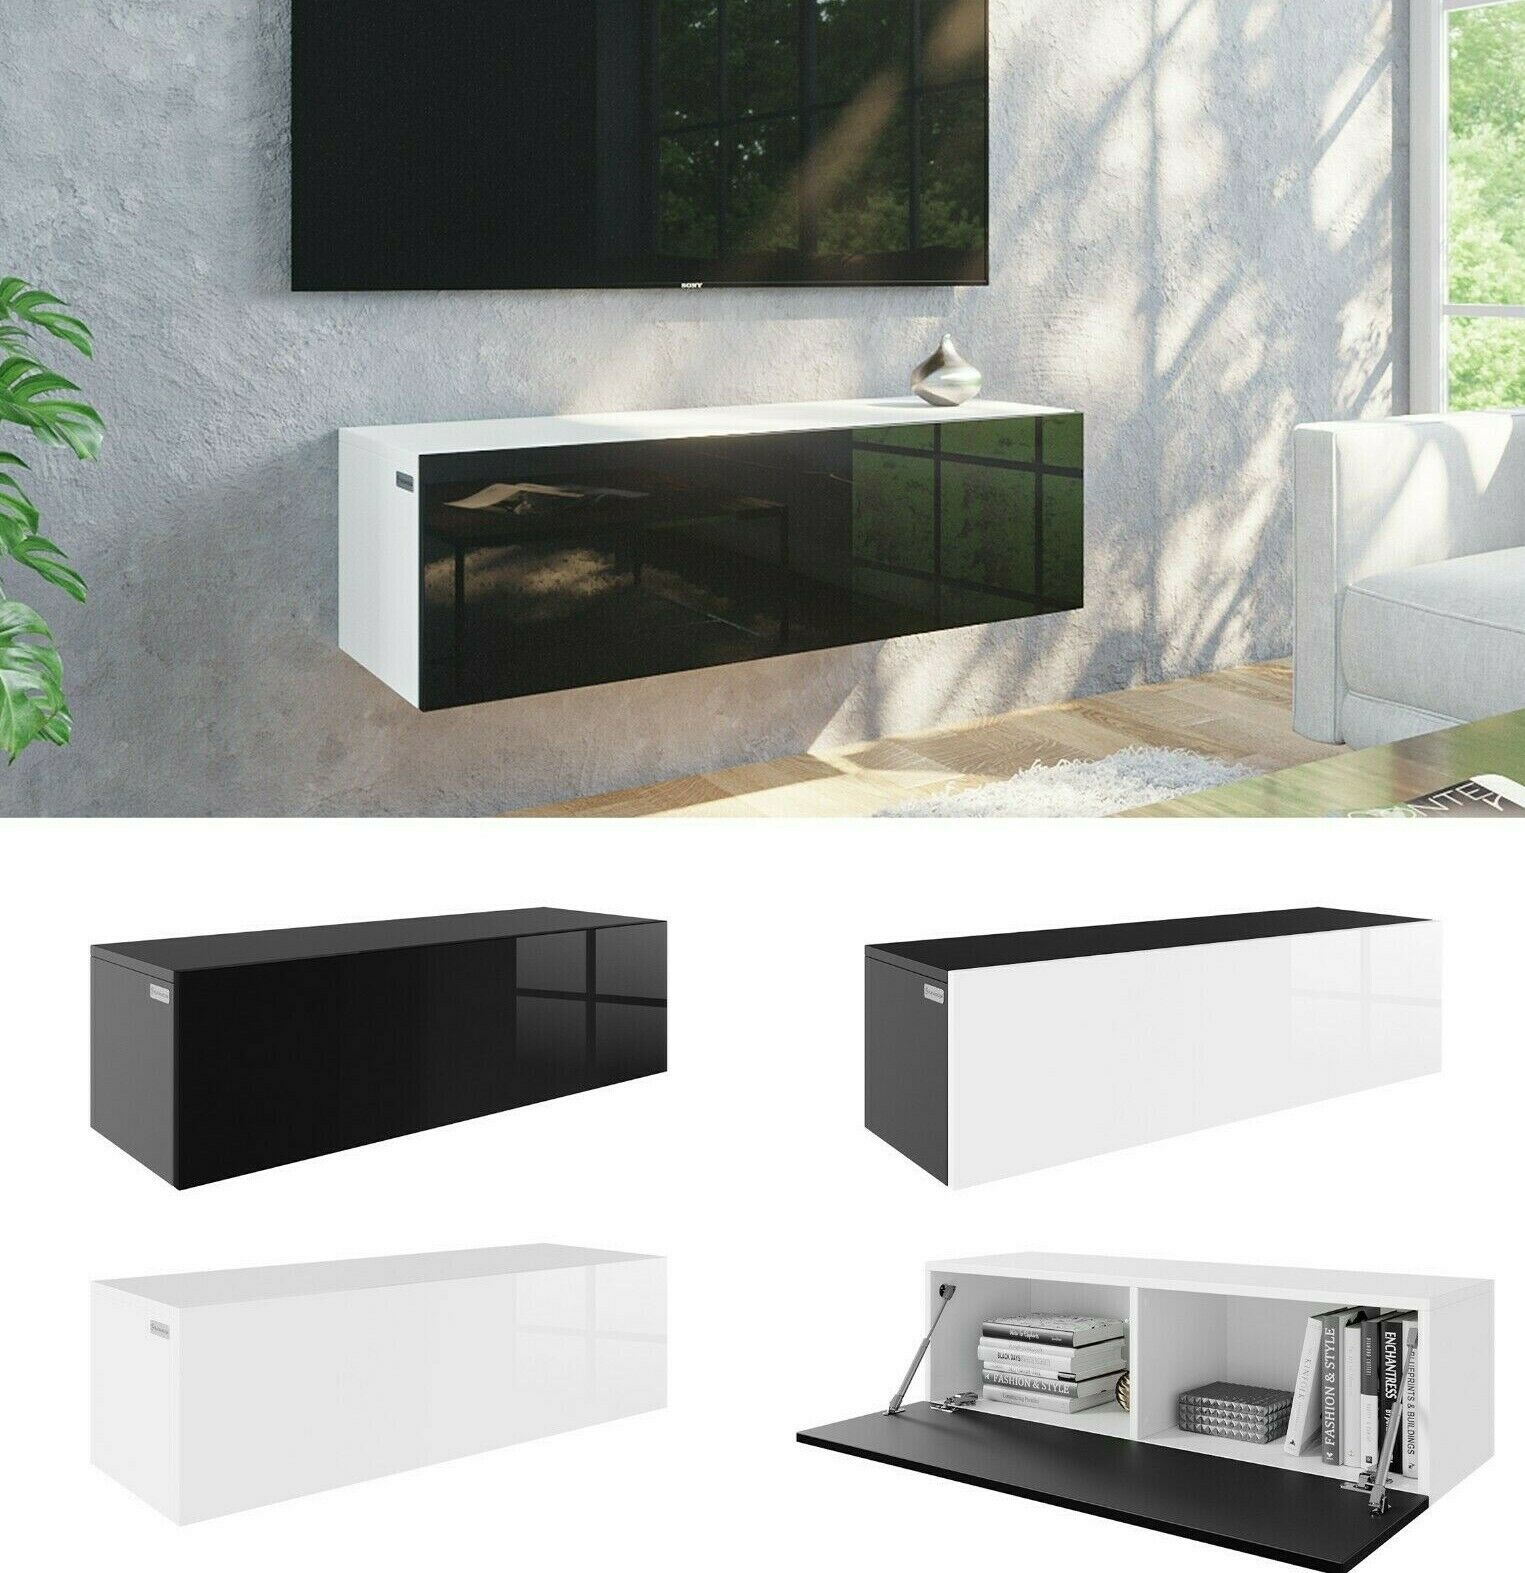 tv h ngeboard lowboard schrank tisch board mit hochglanz 105 cm l nge eur 94 00 picclick de. Black Bedroom Furniture Sets. Home Design Ideas